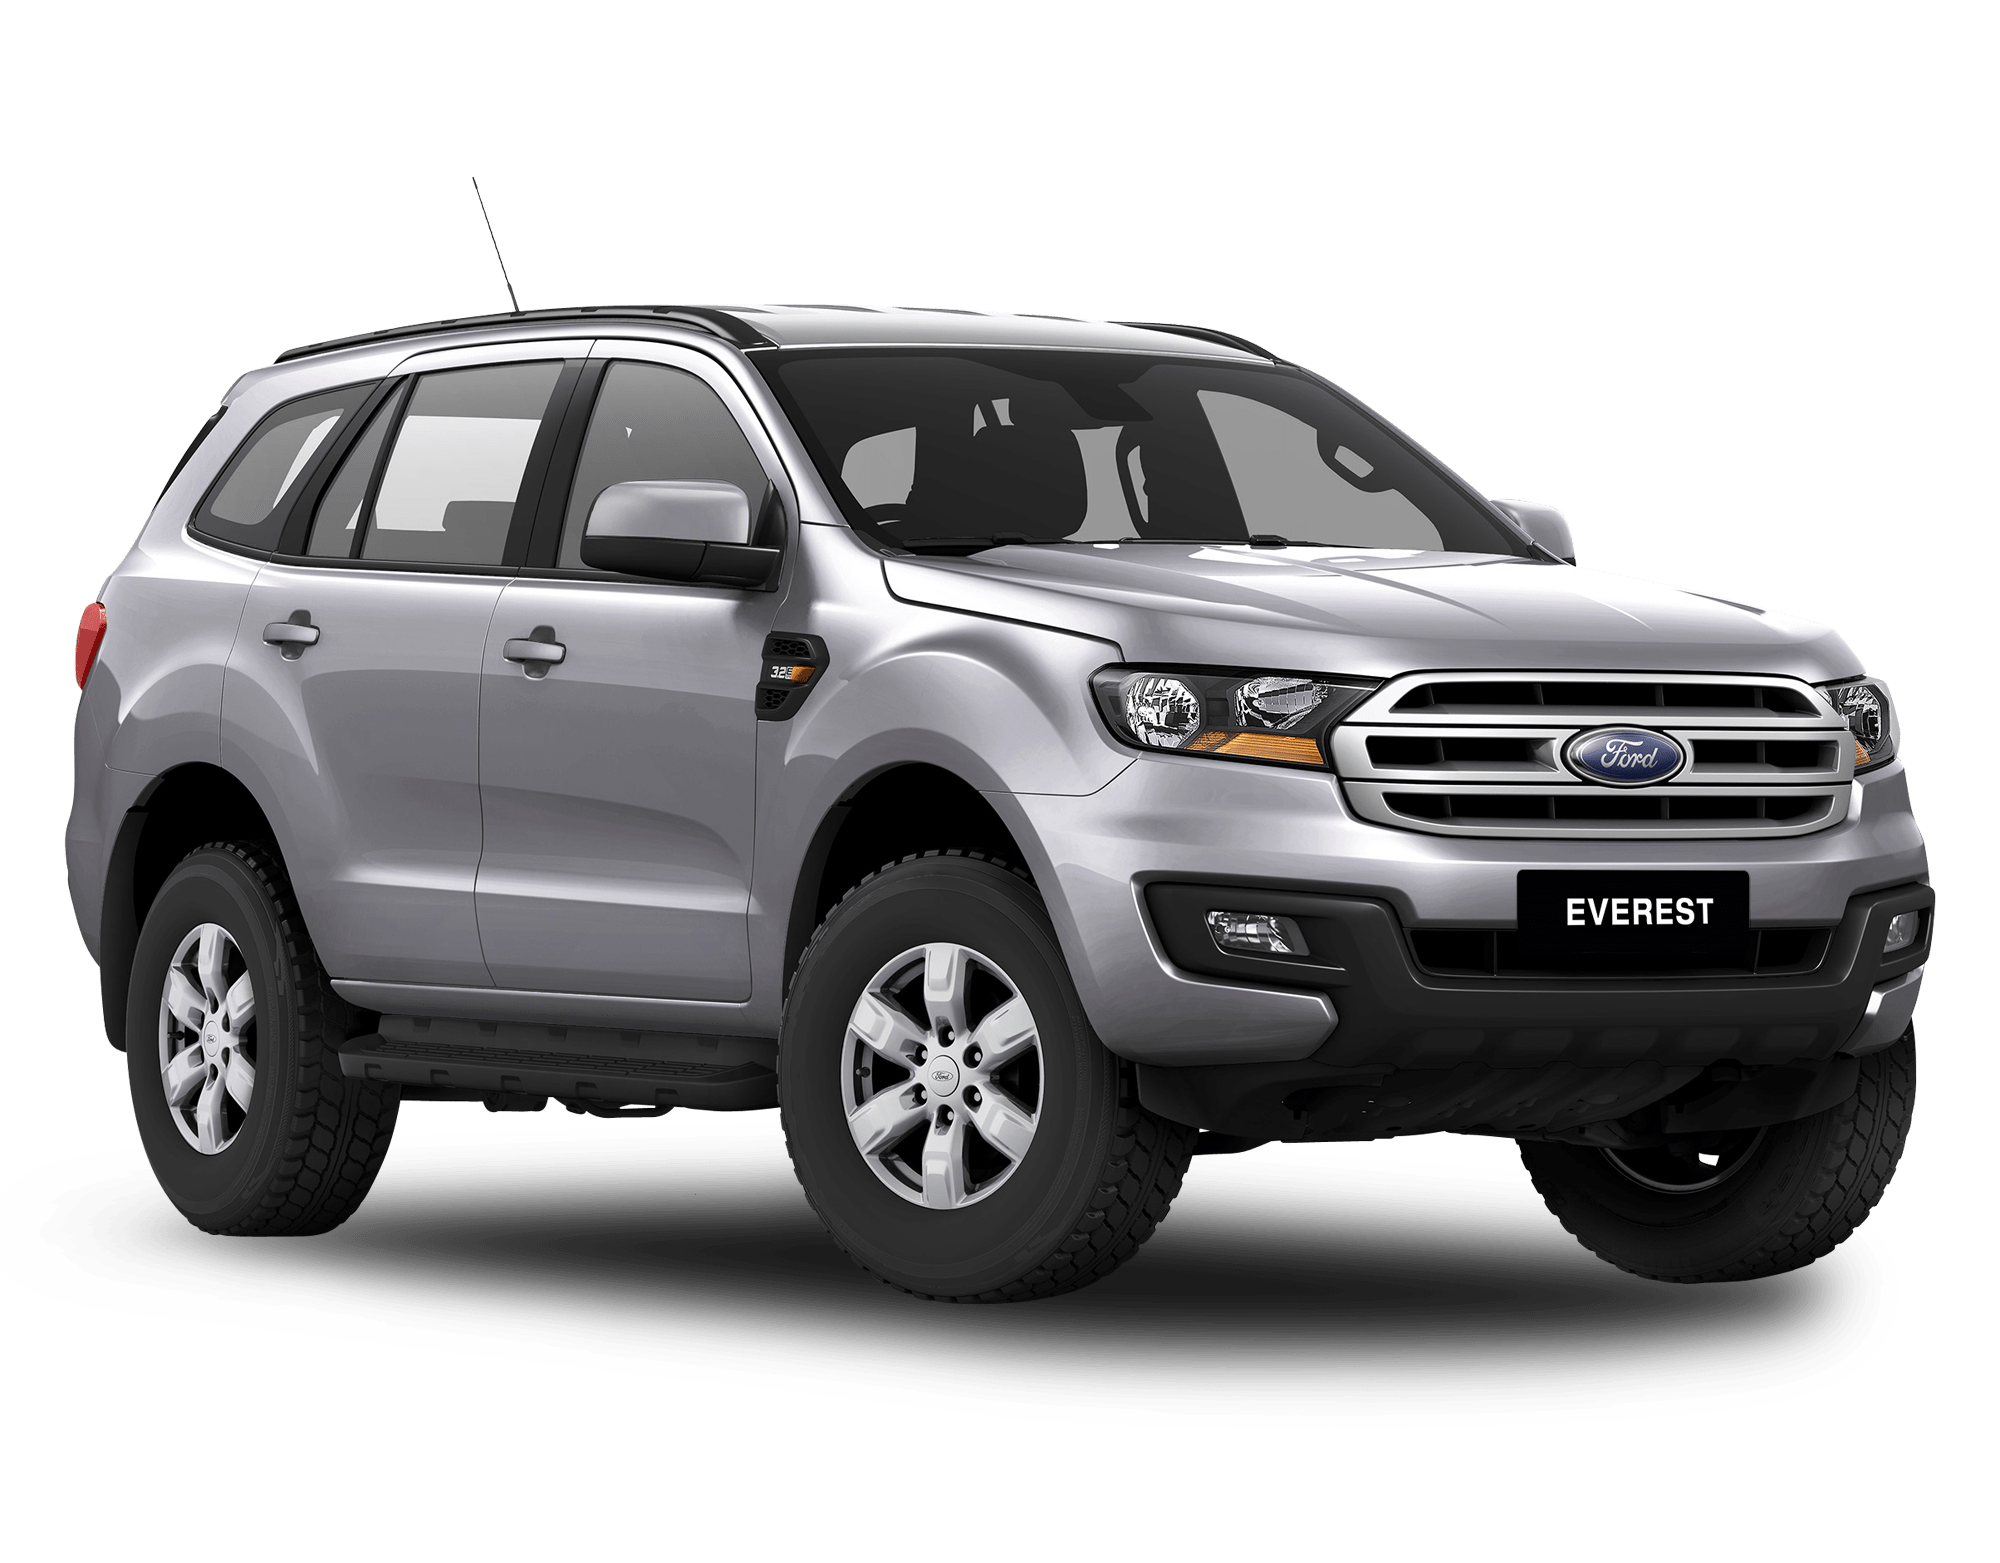 Ford Everest Review Price For Sale Colours Interior Specs Carsguide